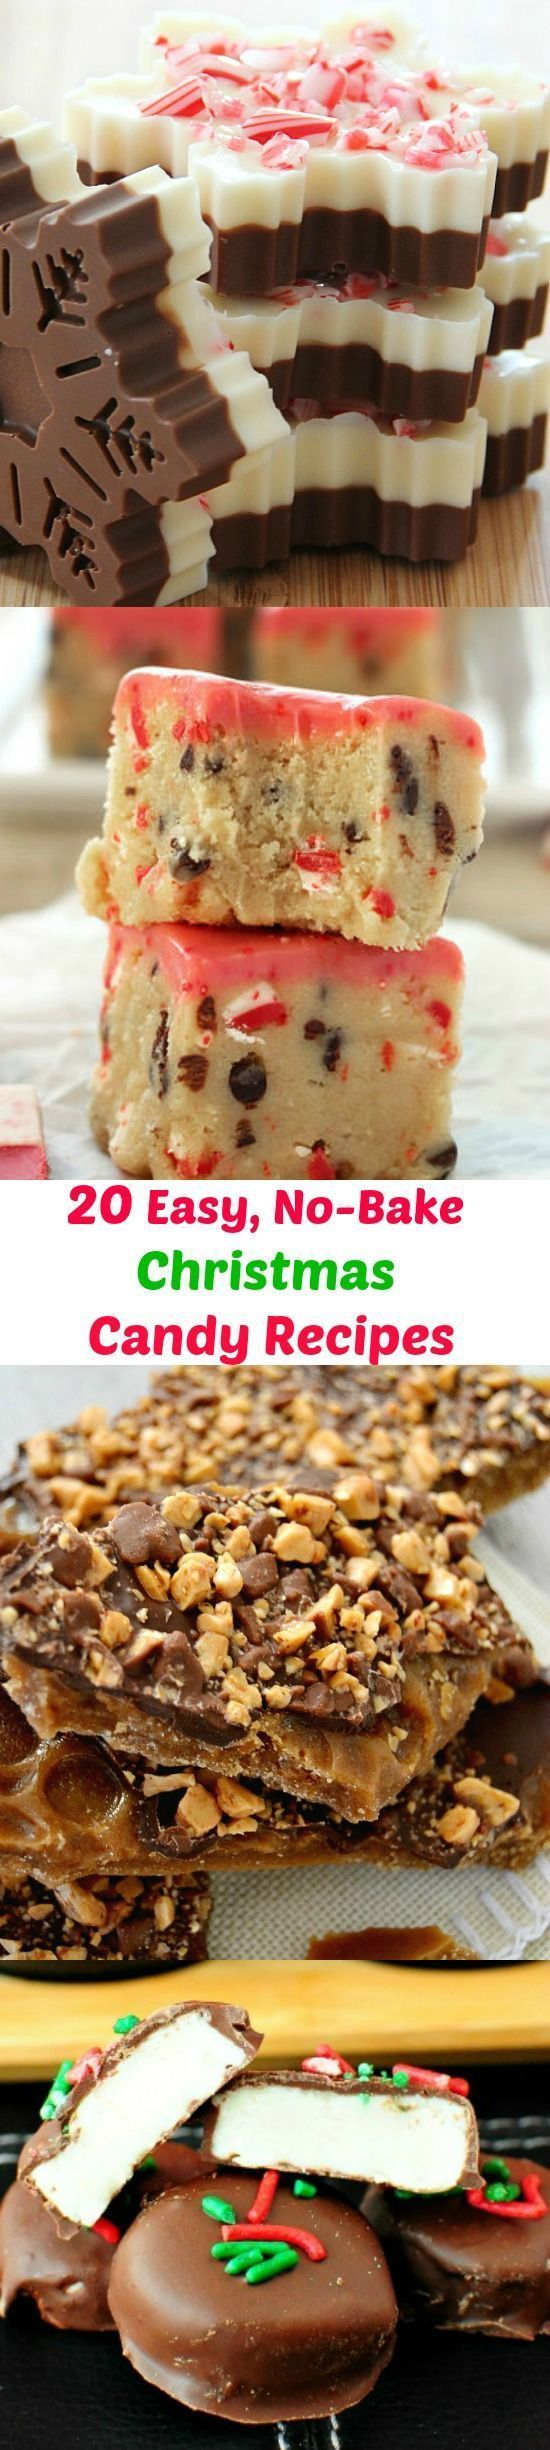 20 quick and easy christmas candy recipes all no bake and no fuss - Easy Christmas Candy